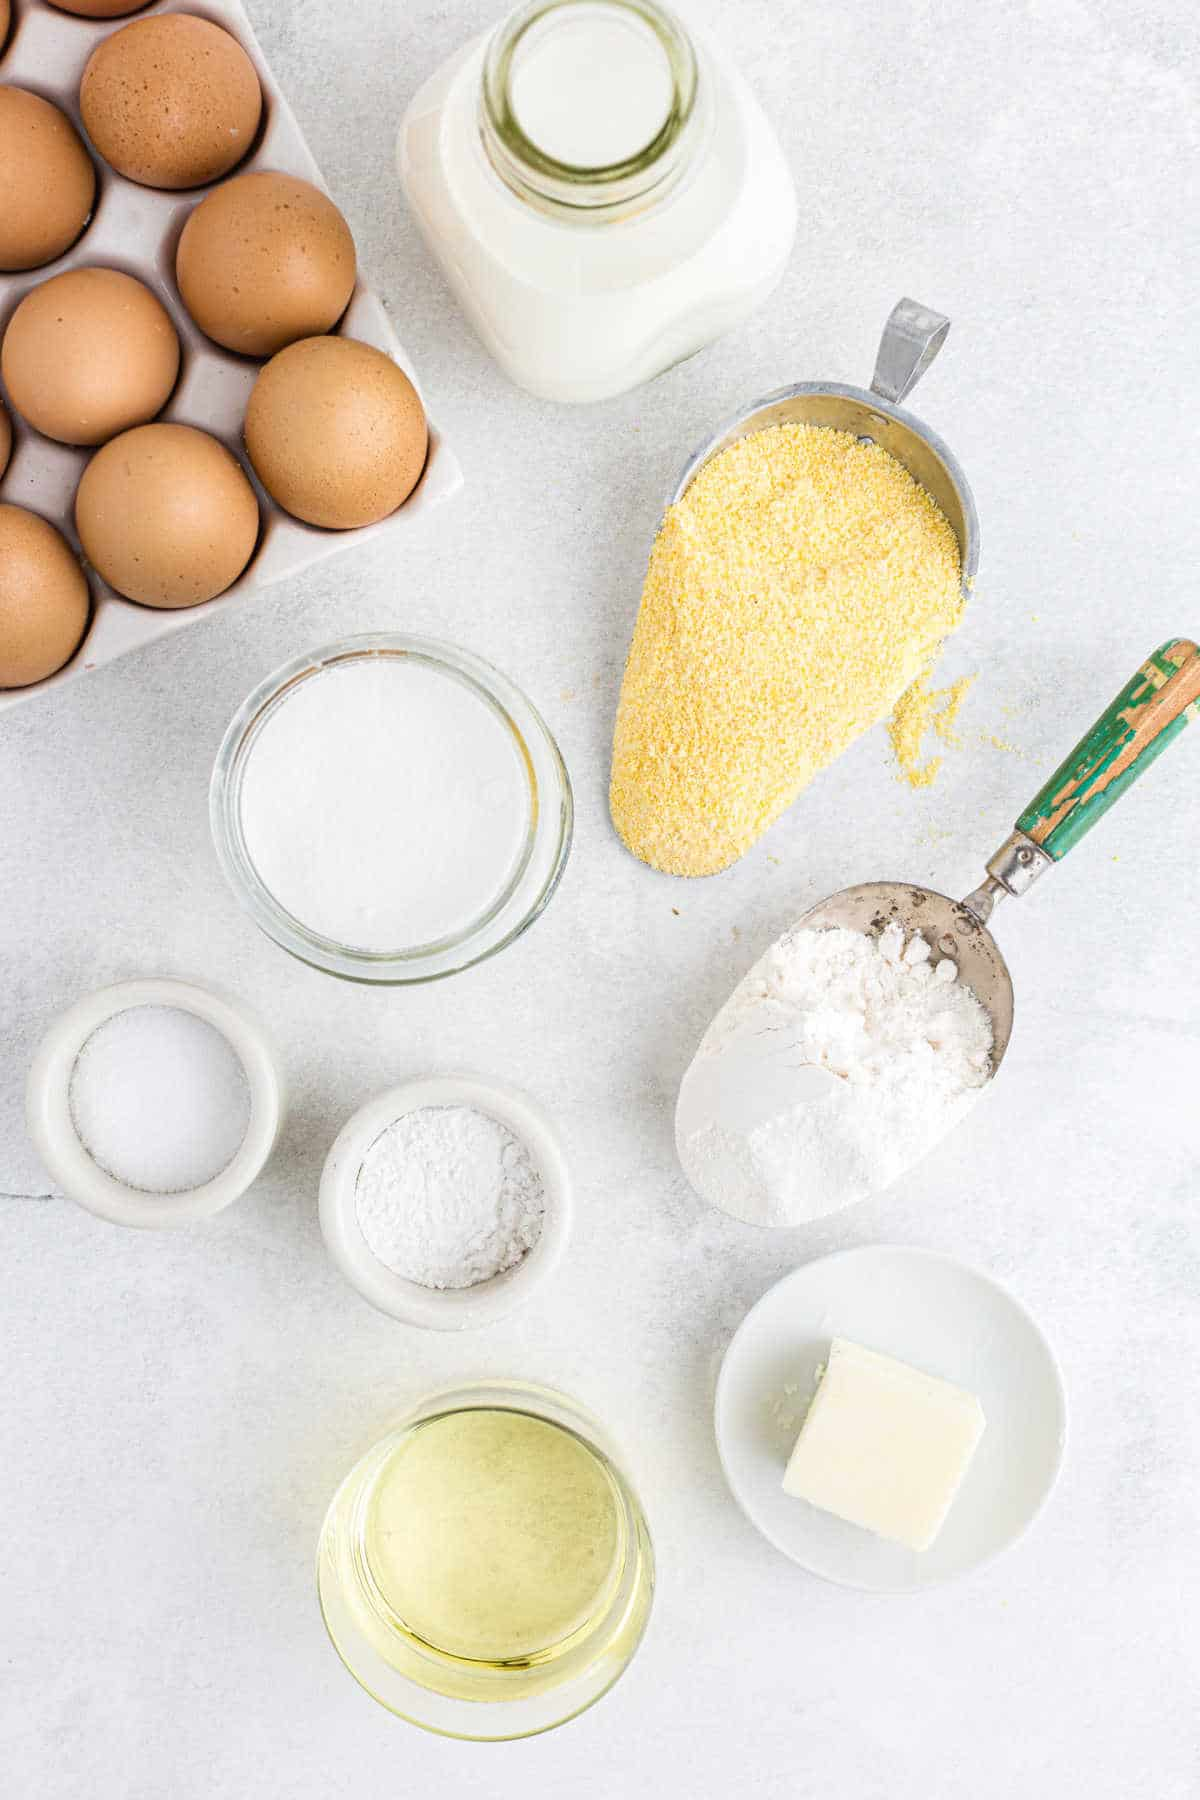 Ingredients for cornbread muffins in dishes.